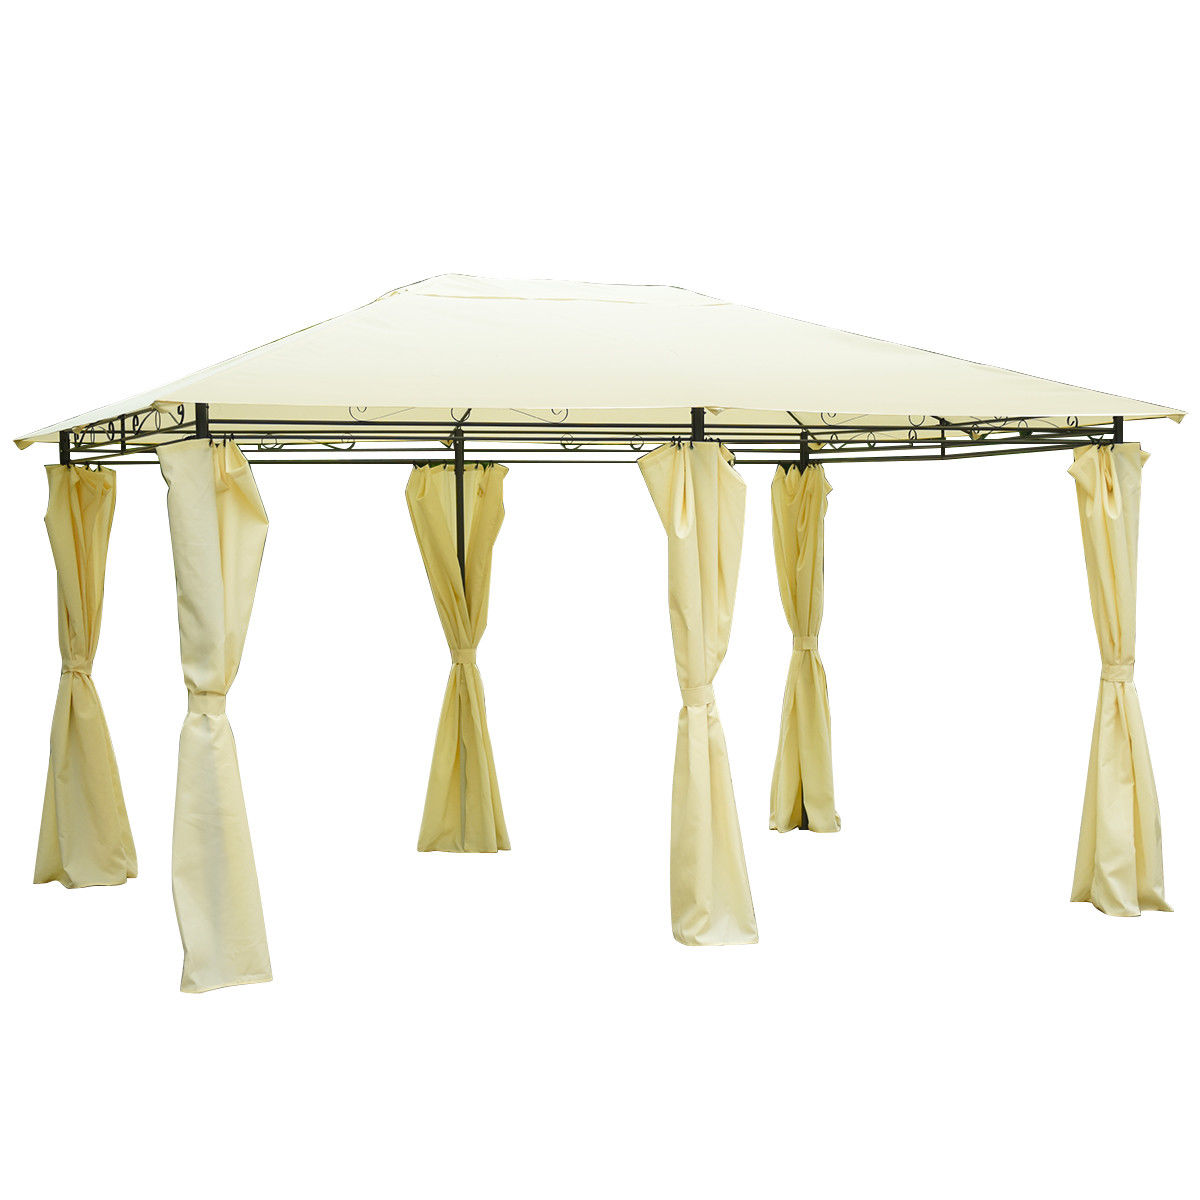 Costway 13'x 10' Gazebo Canopy Shelter Patio Party Tent ...